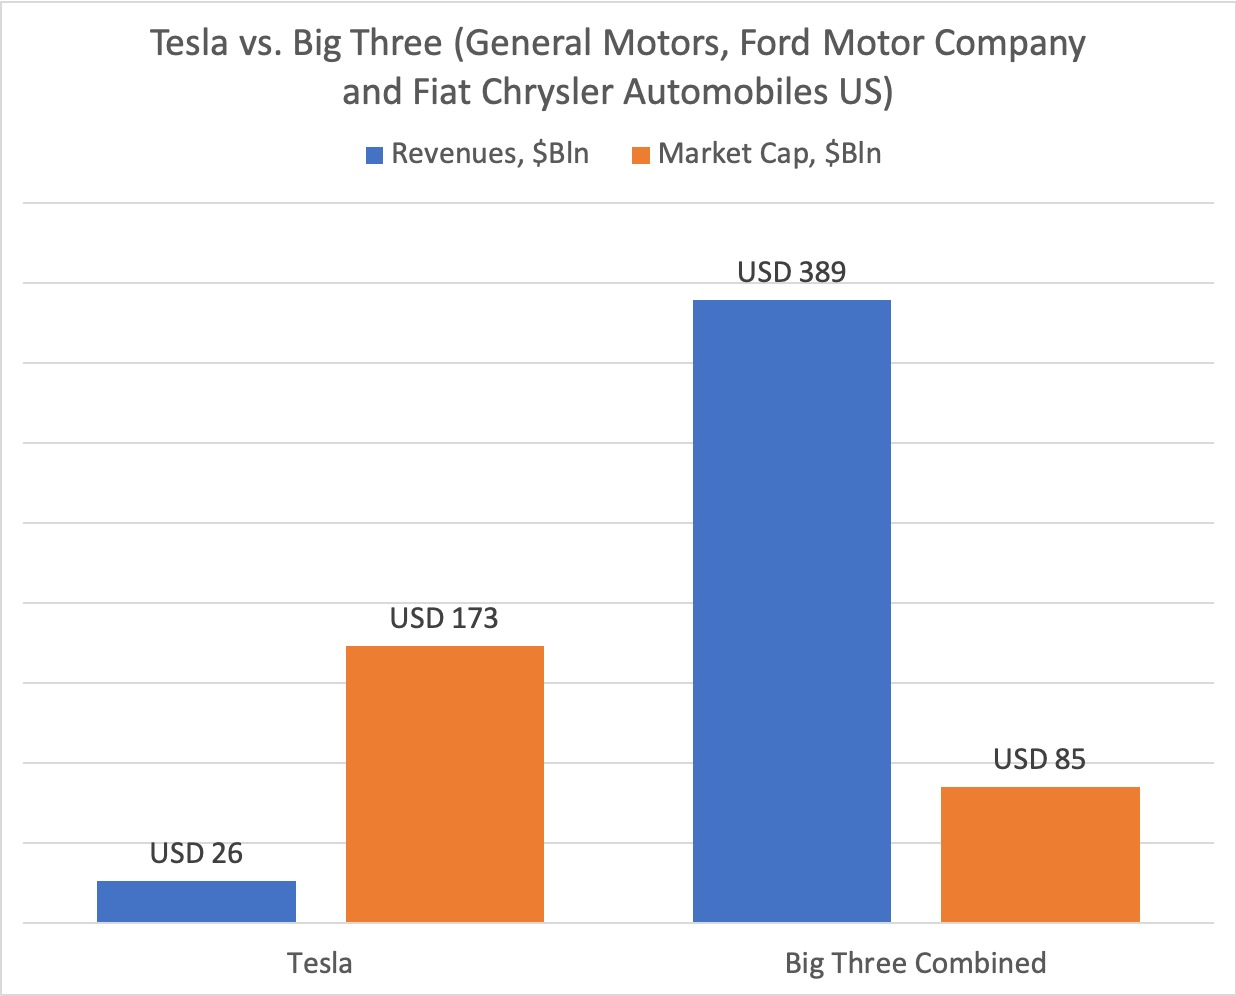 Tesla vs. Big Three (General Motors, Ford Motor Company and Fiat Chrysler Automobiles US)